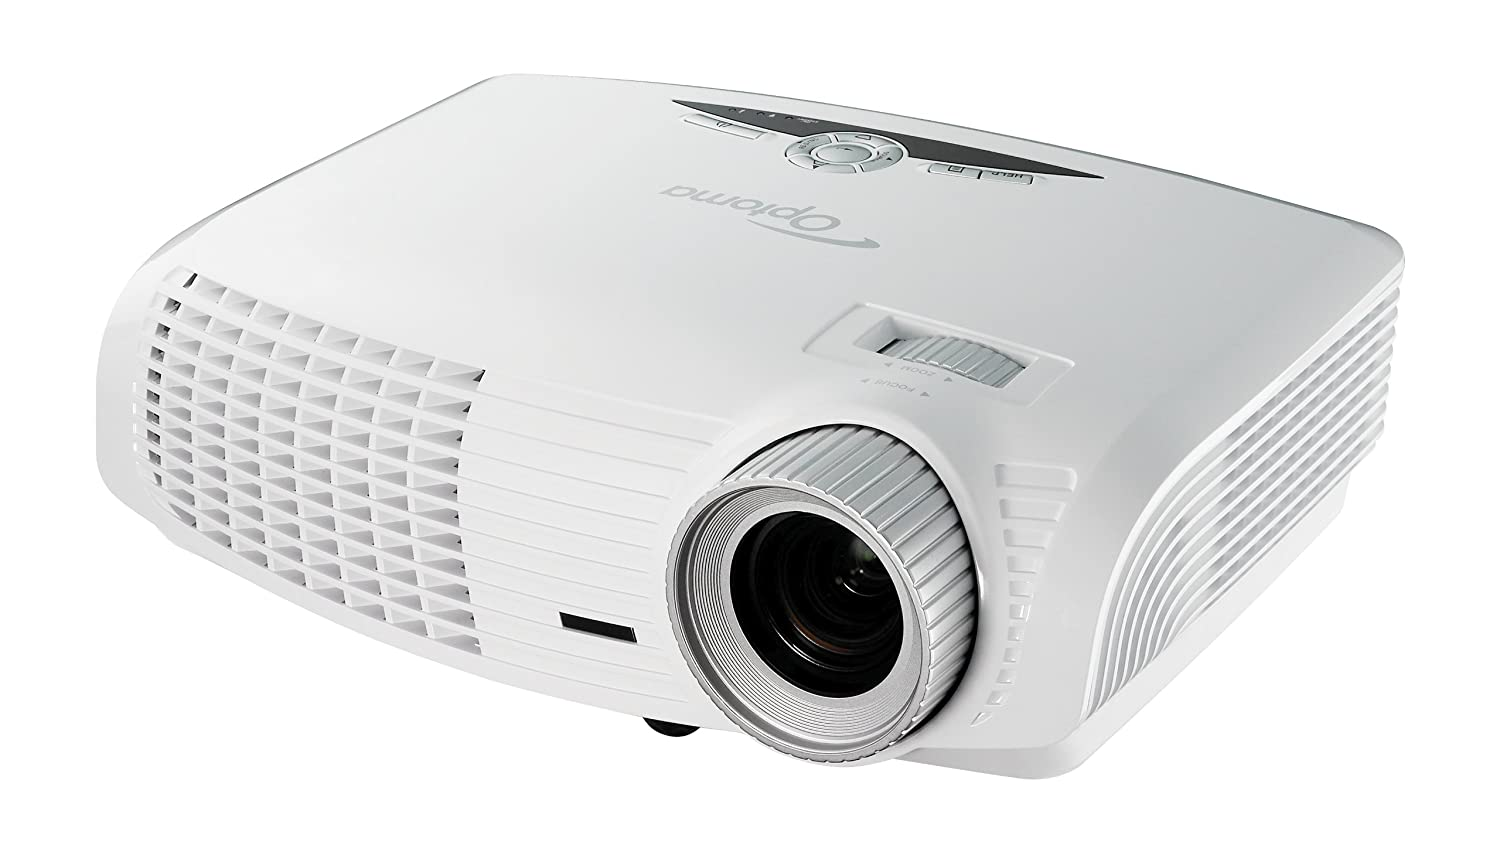 Optoma hd20 dlp 1080p 1700 ansi lumens home theater for Hd projector amazon